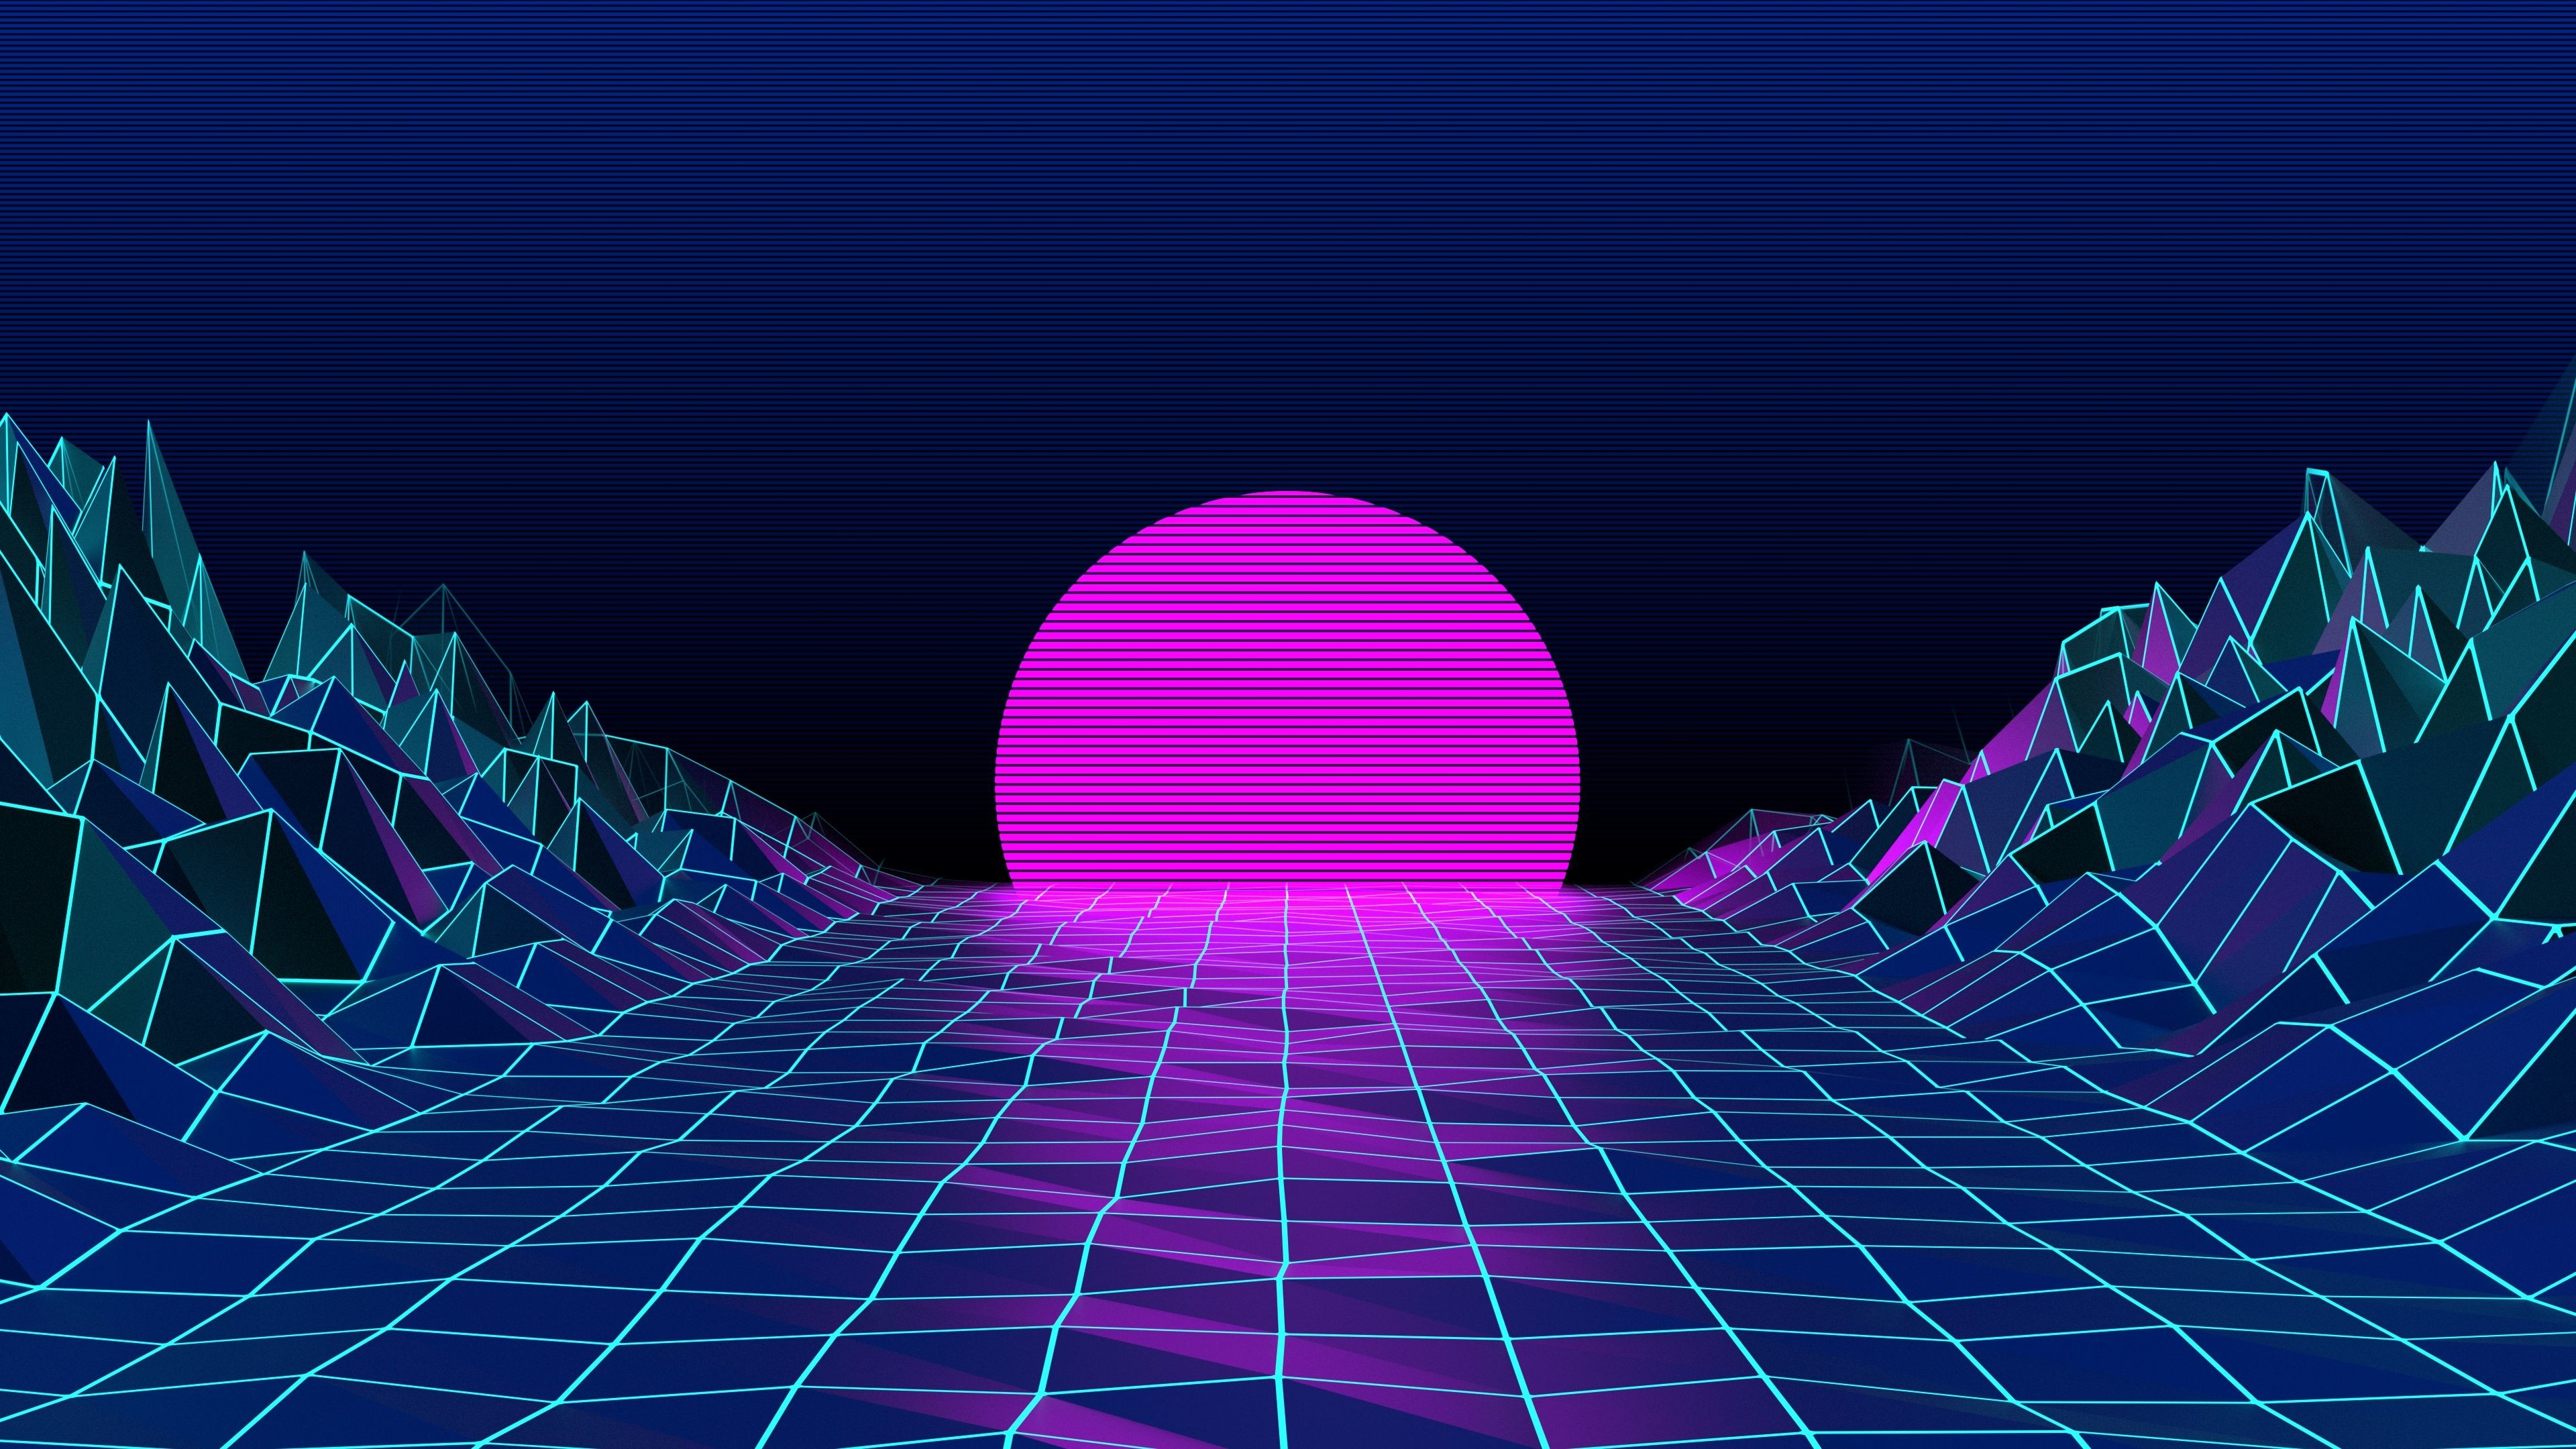 76 Neon 80S Wallpapers on WallpaperPlay 3840x2160